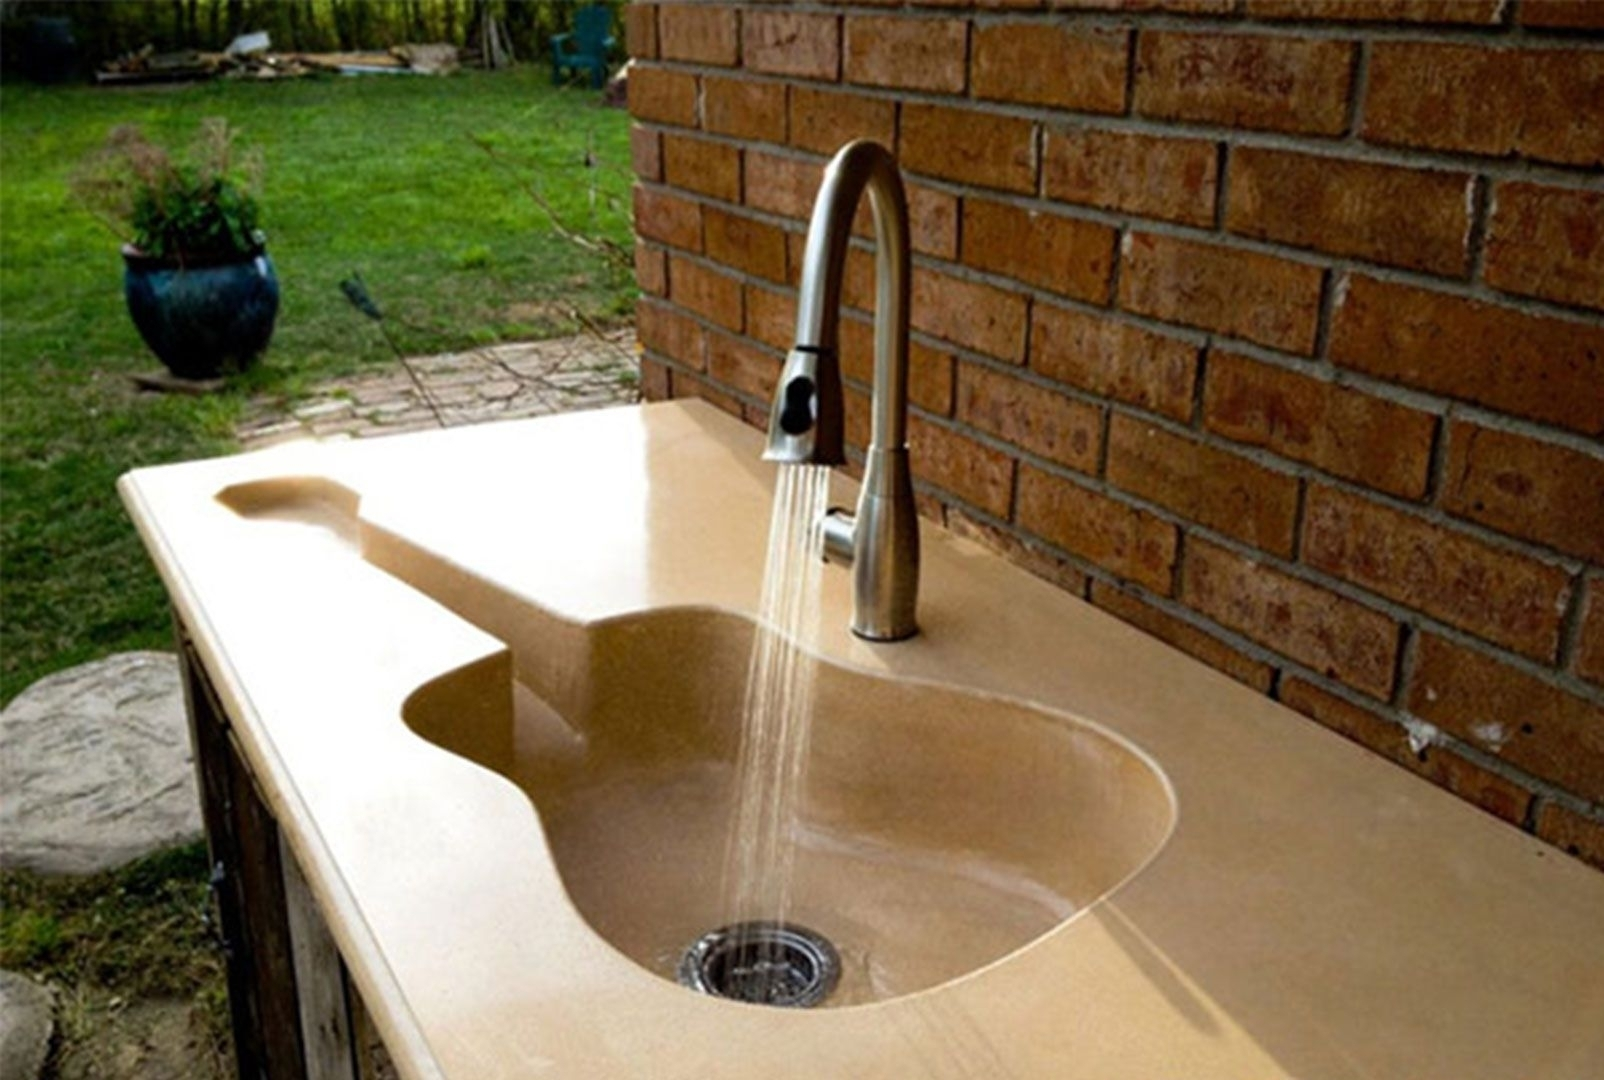 How To Hook Outdoor Kitchen Sink Drain To Grey Water Tank ...